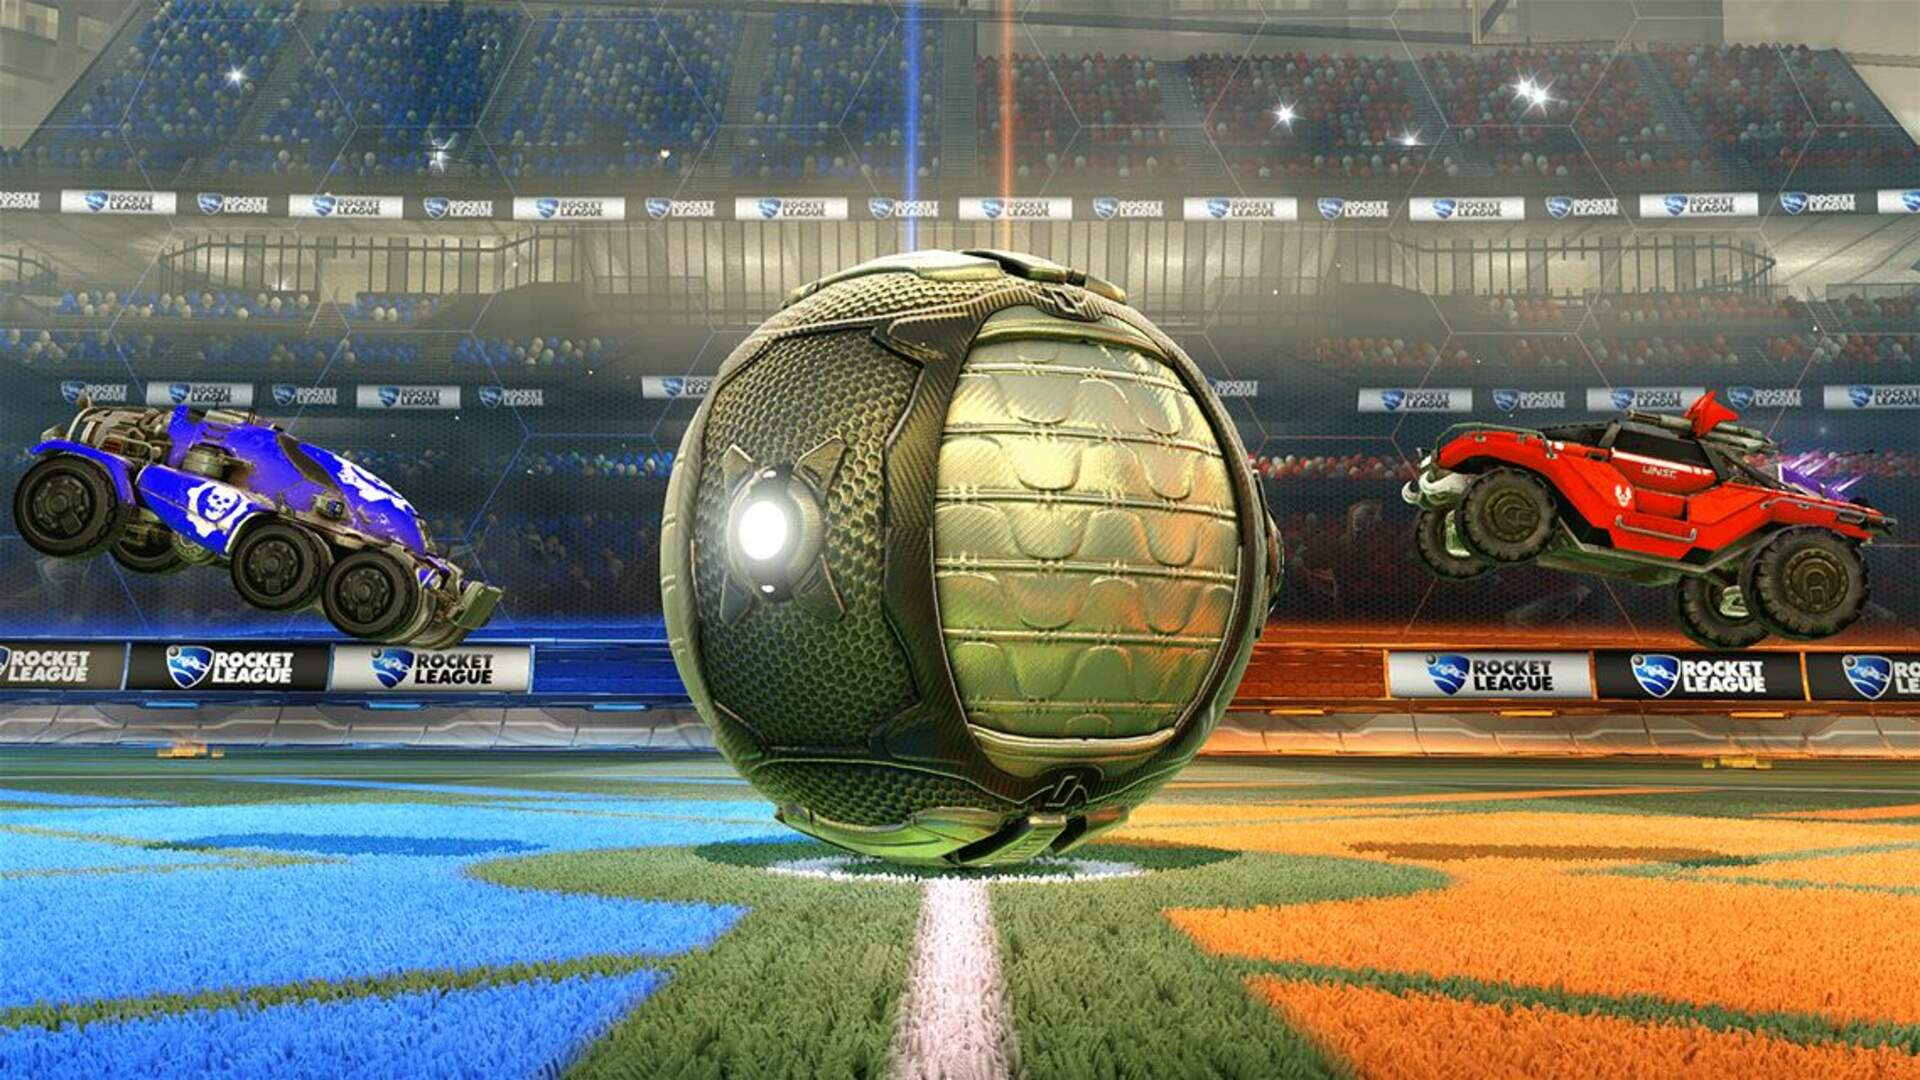 Rocket League - Nintendo Switch Release Date, PS4, Xbox One, PC, Cross-Play, Features - Everything We Know